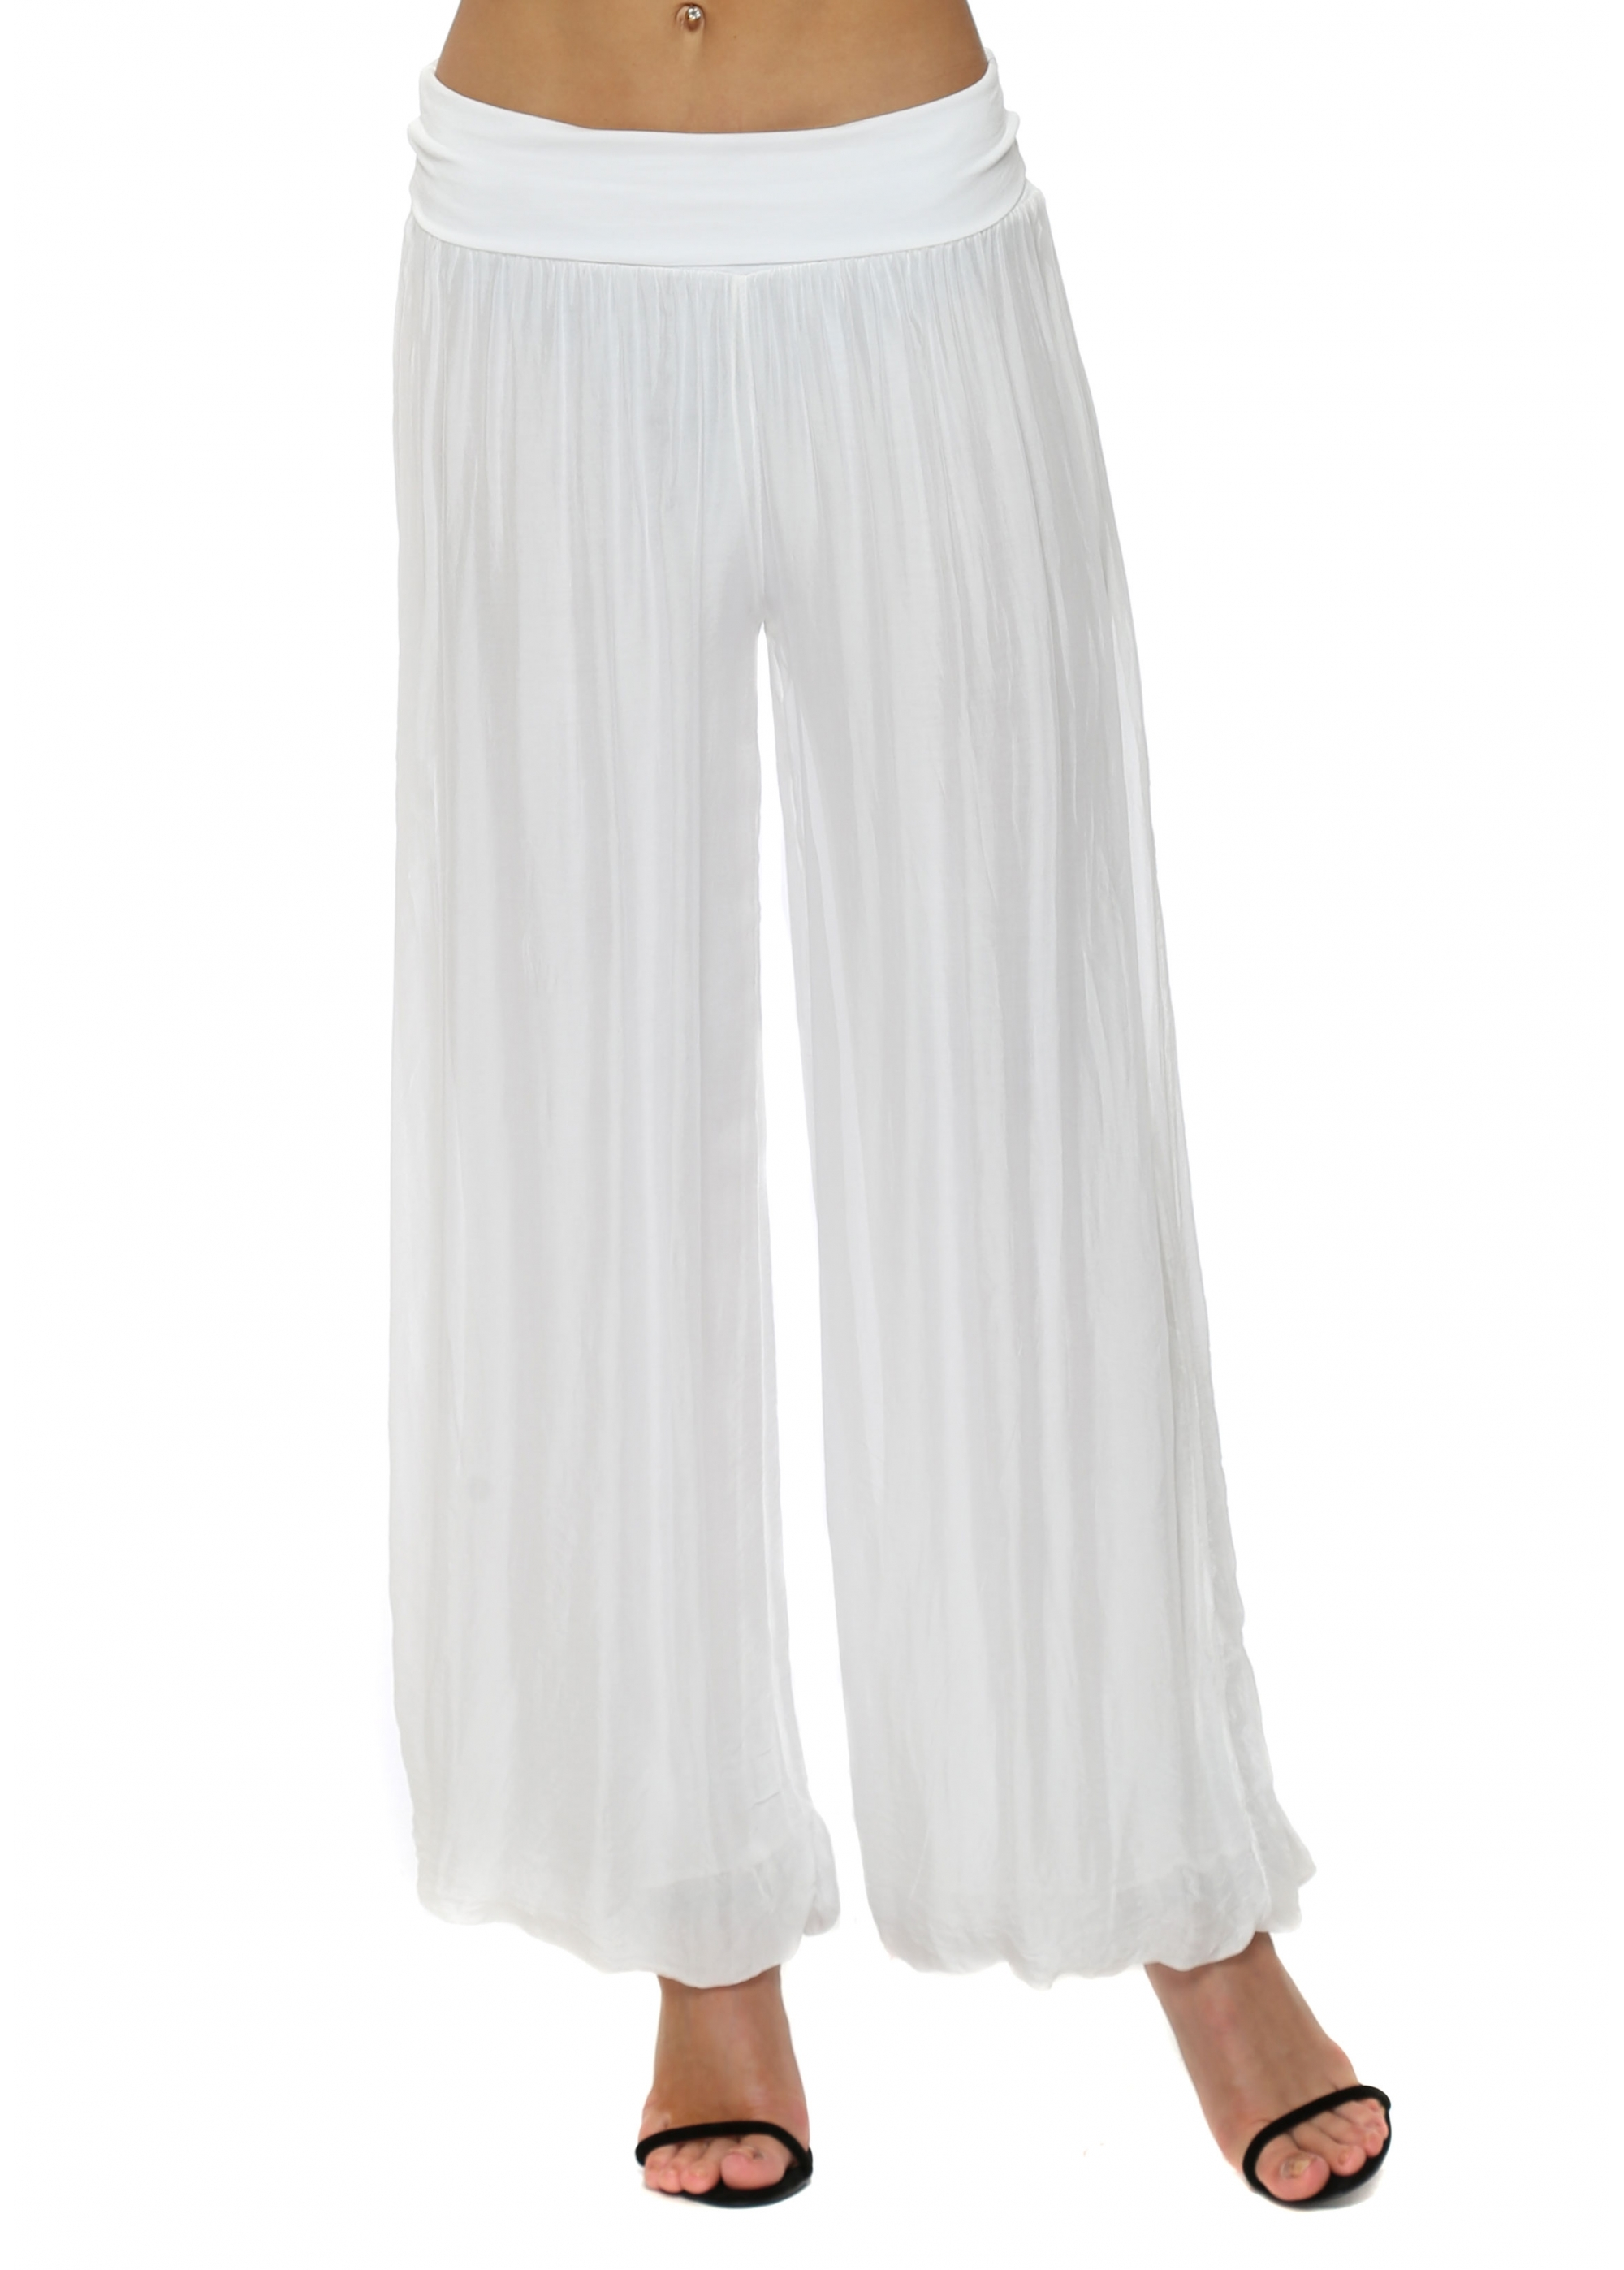 93830dac35 White Silk Wide Leg Casual Palazzo Pants For The Summer